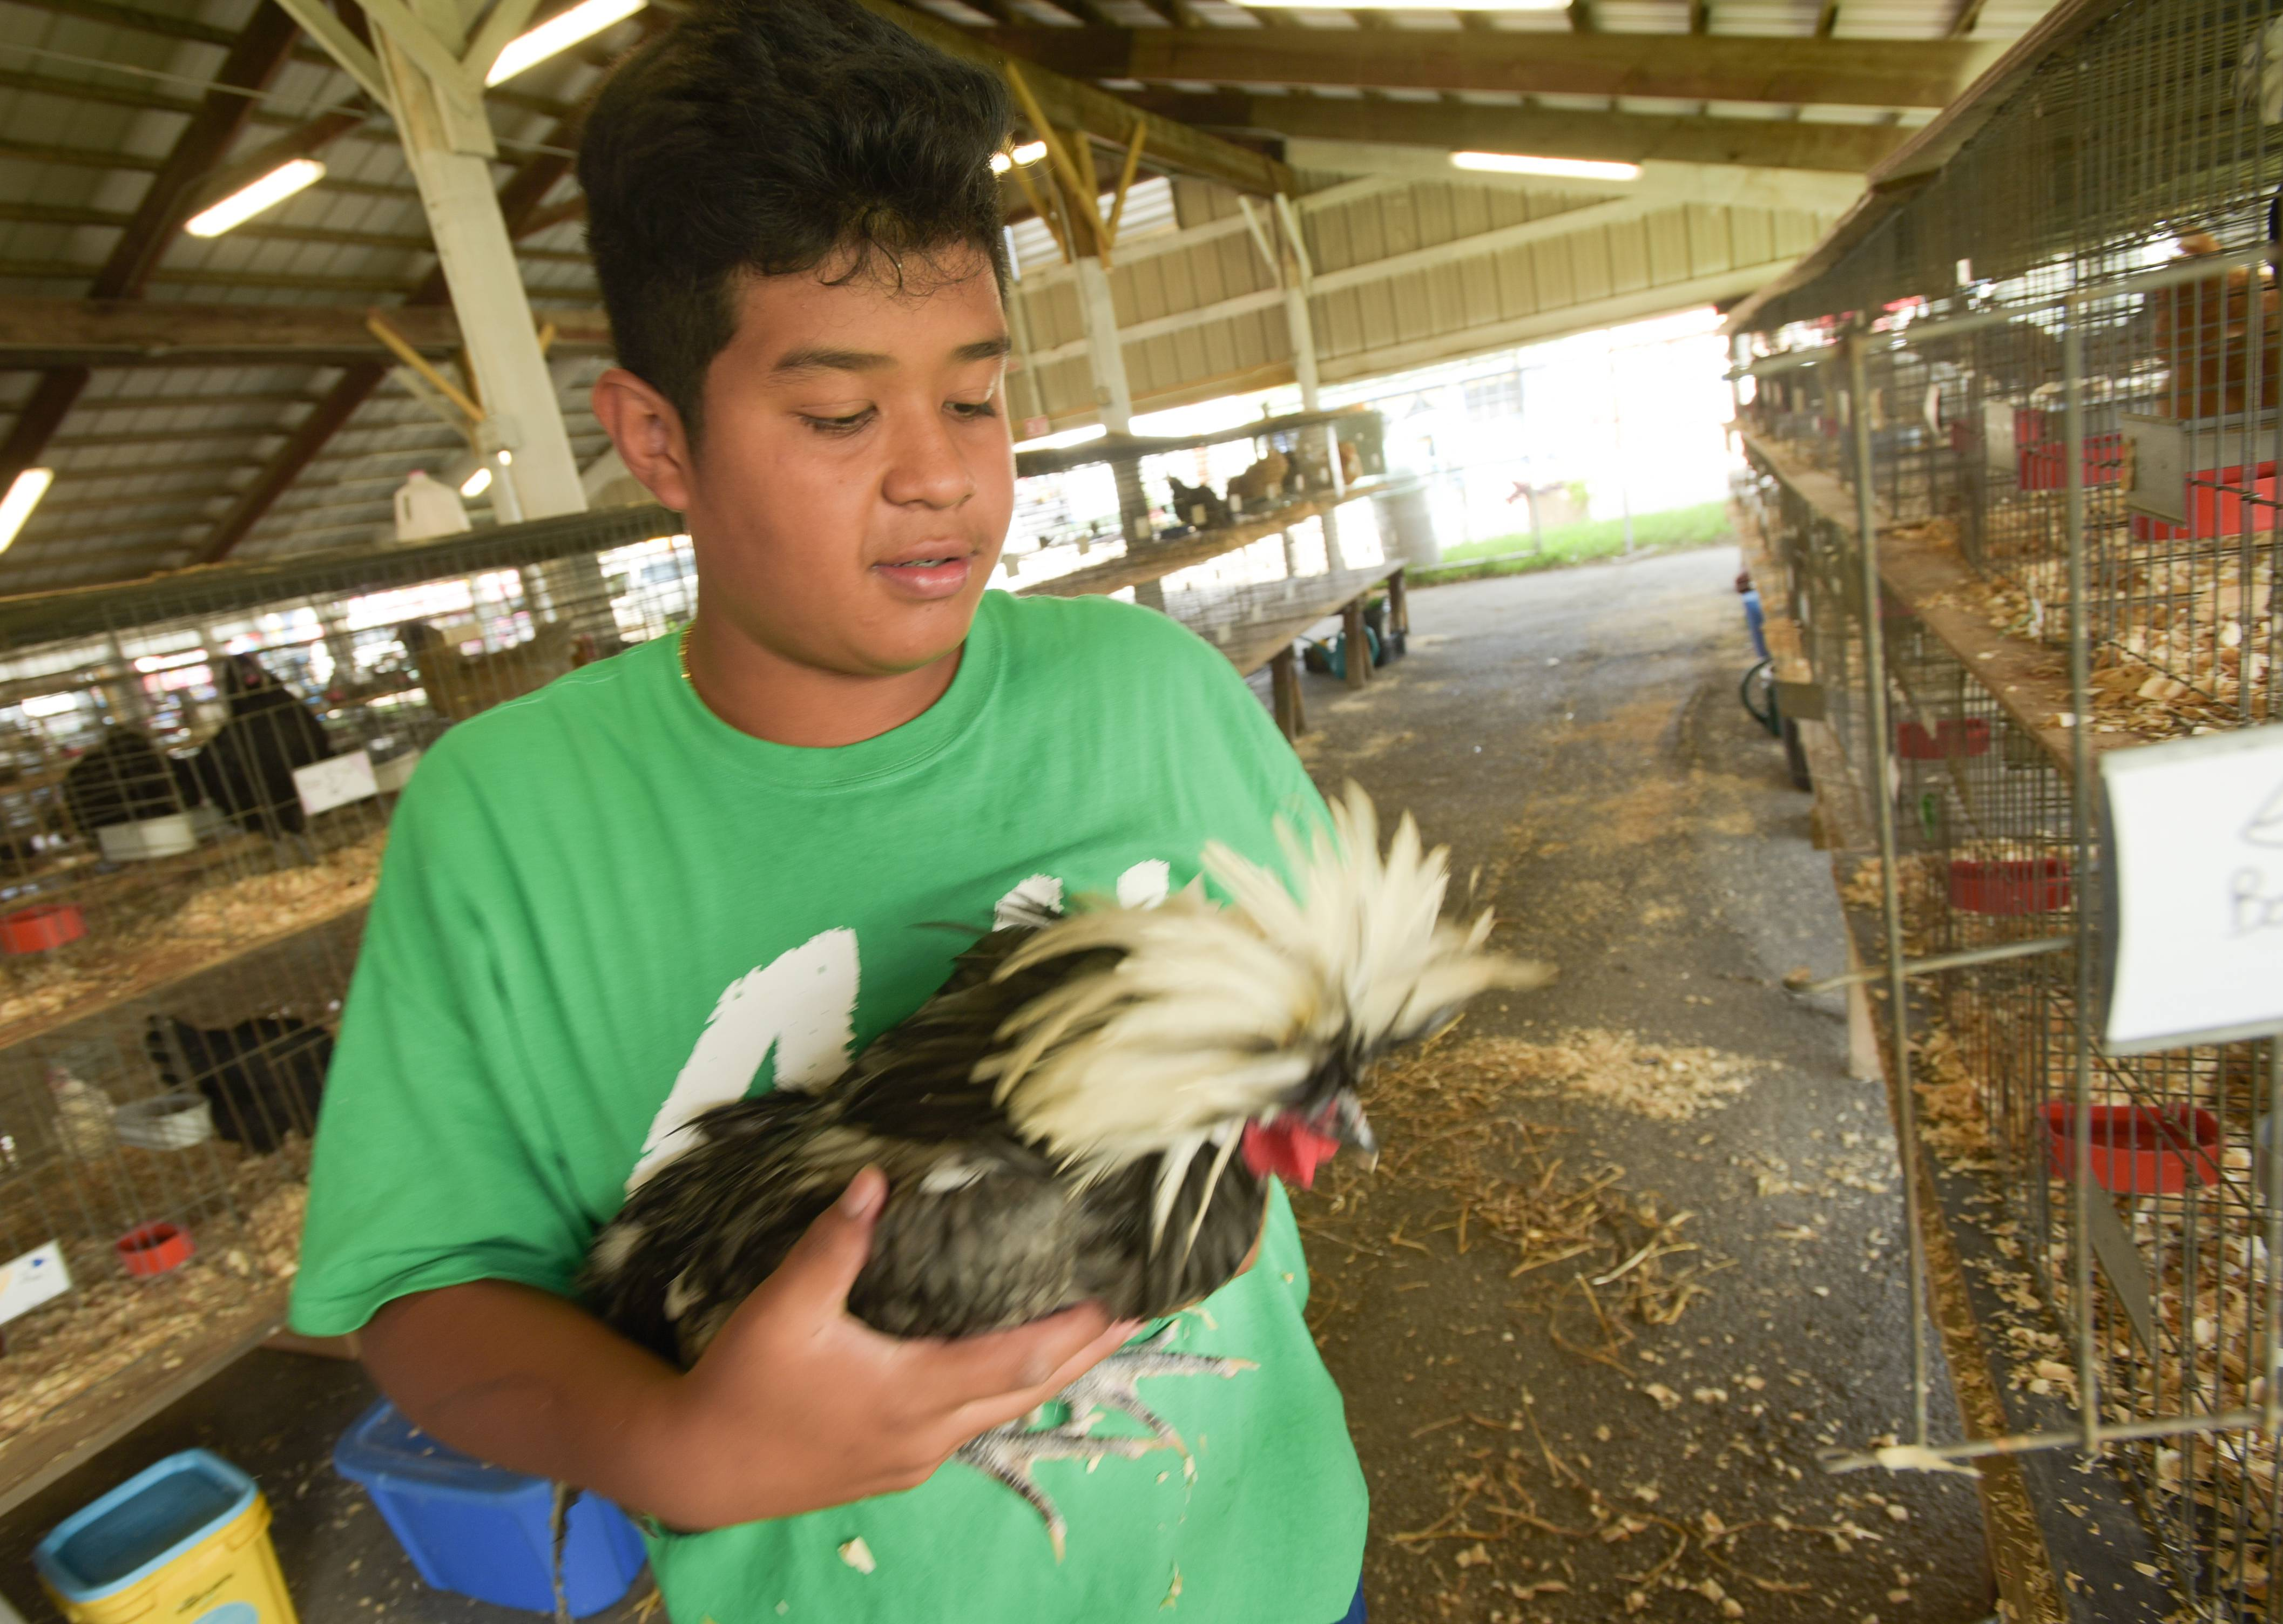 Rony Borowiak, 14, of Warrenville holds one of his Polish Roosters he is entering in the DuPage County Fair. The farm animals arrived in the barns at the DuPage County Fairgrounds on Tuesday.